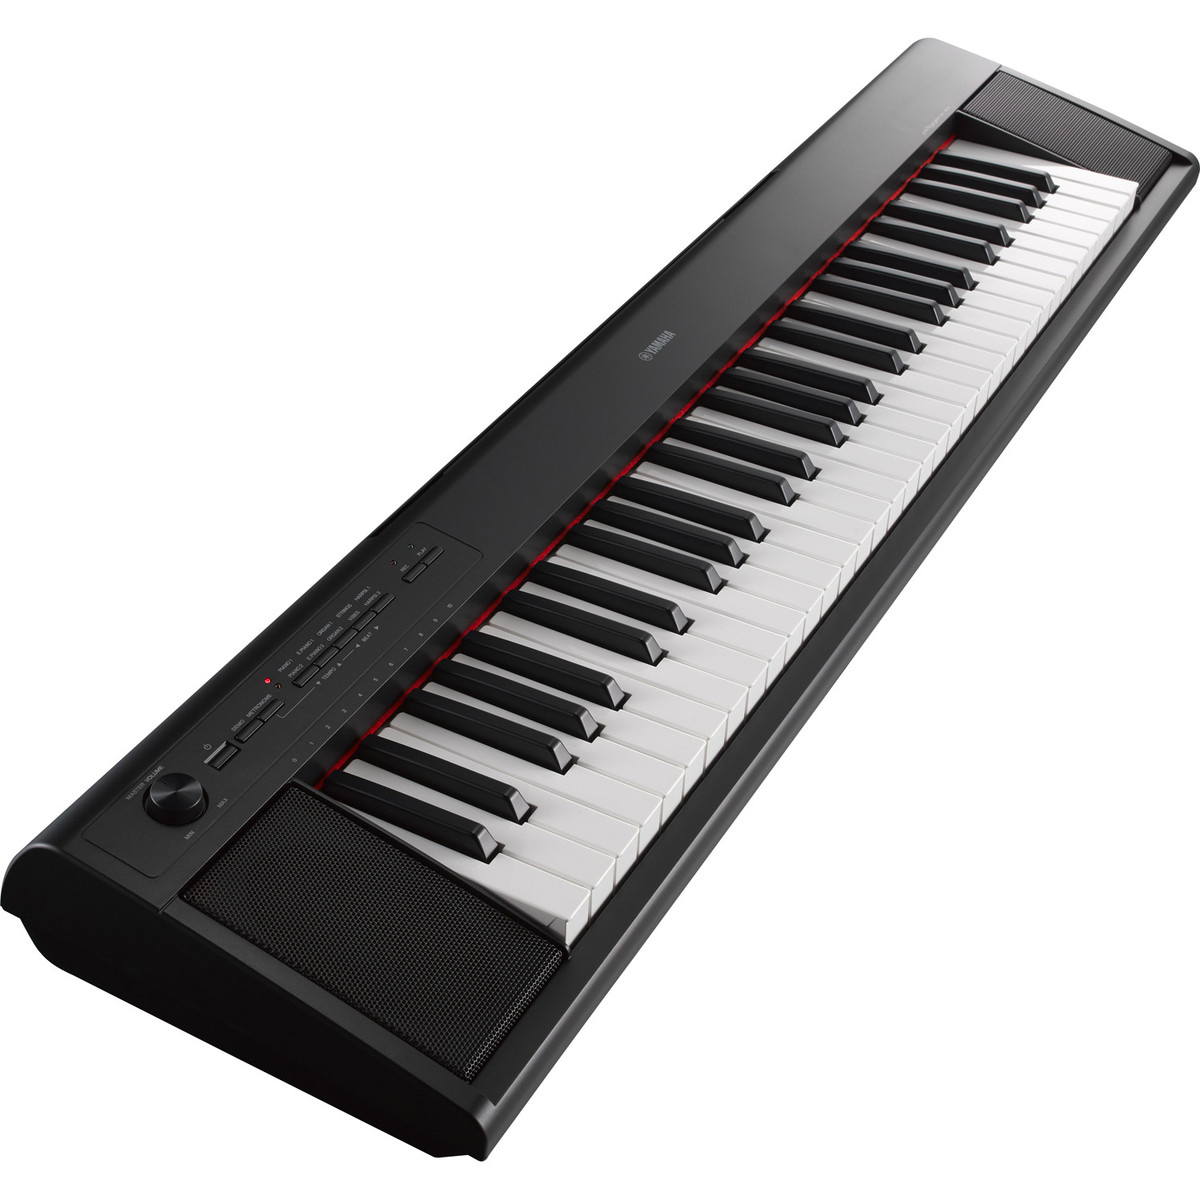 MusicWorks : Portable Keyboards - Home Keyboards - Home Keyboard